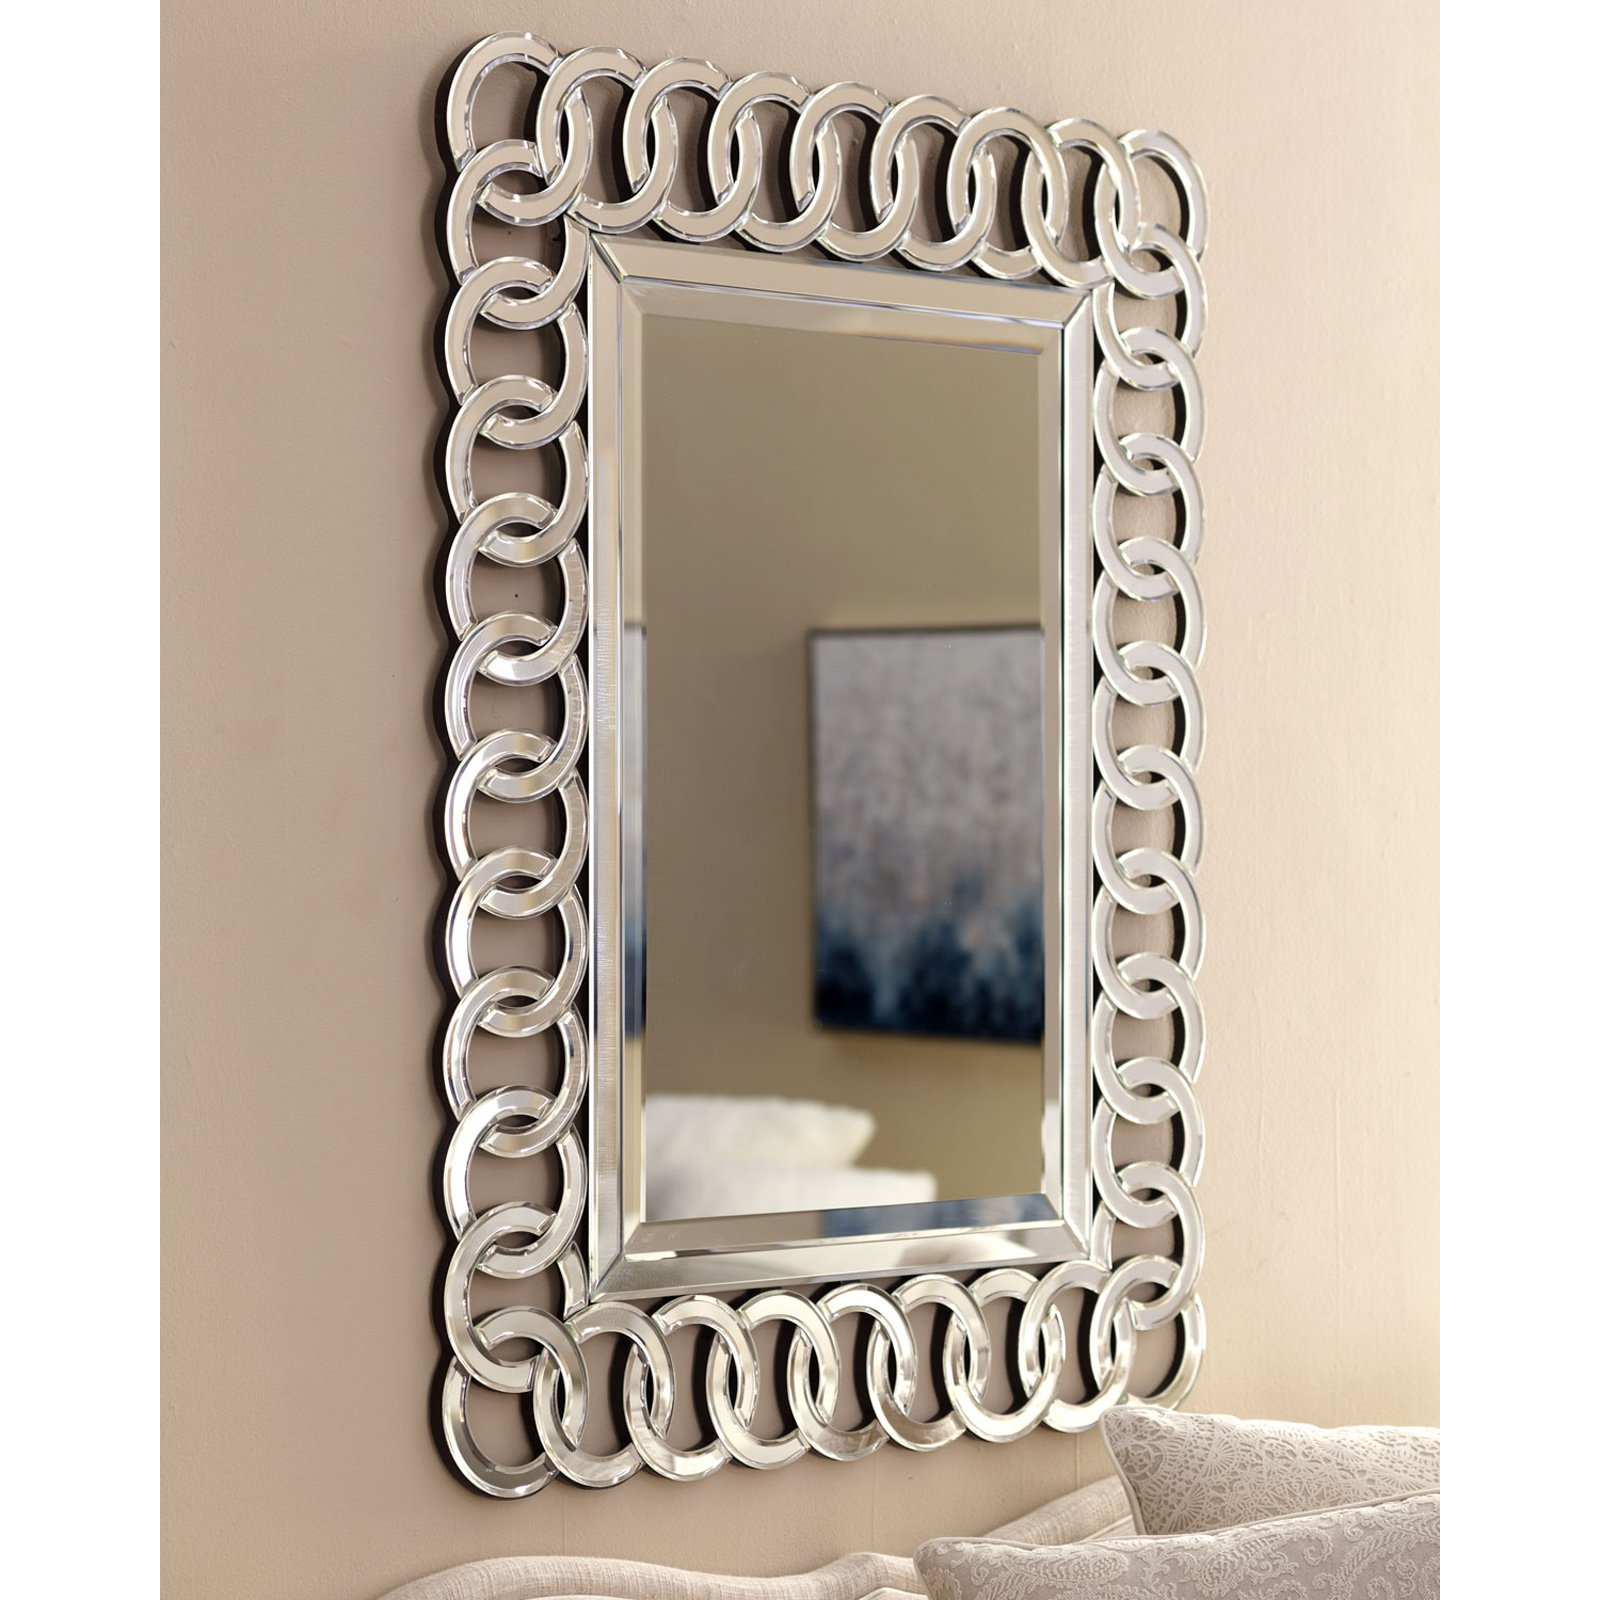 Afina Modern Luxe Circles Wall Mirror - 30W x 42H in.